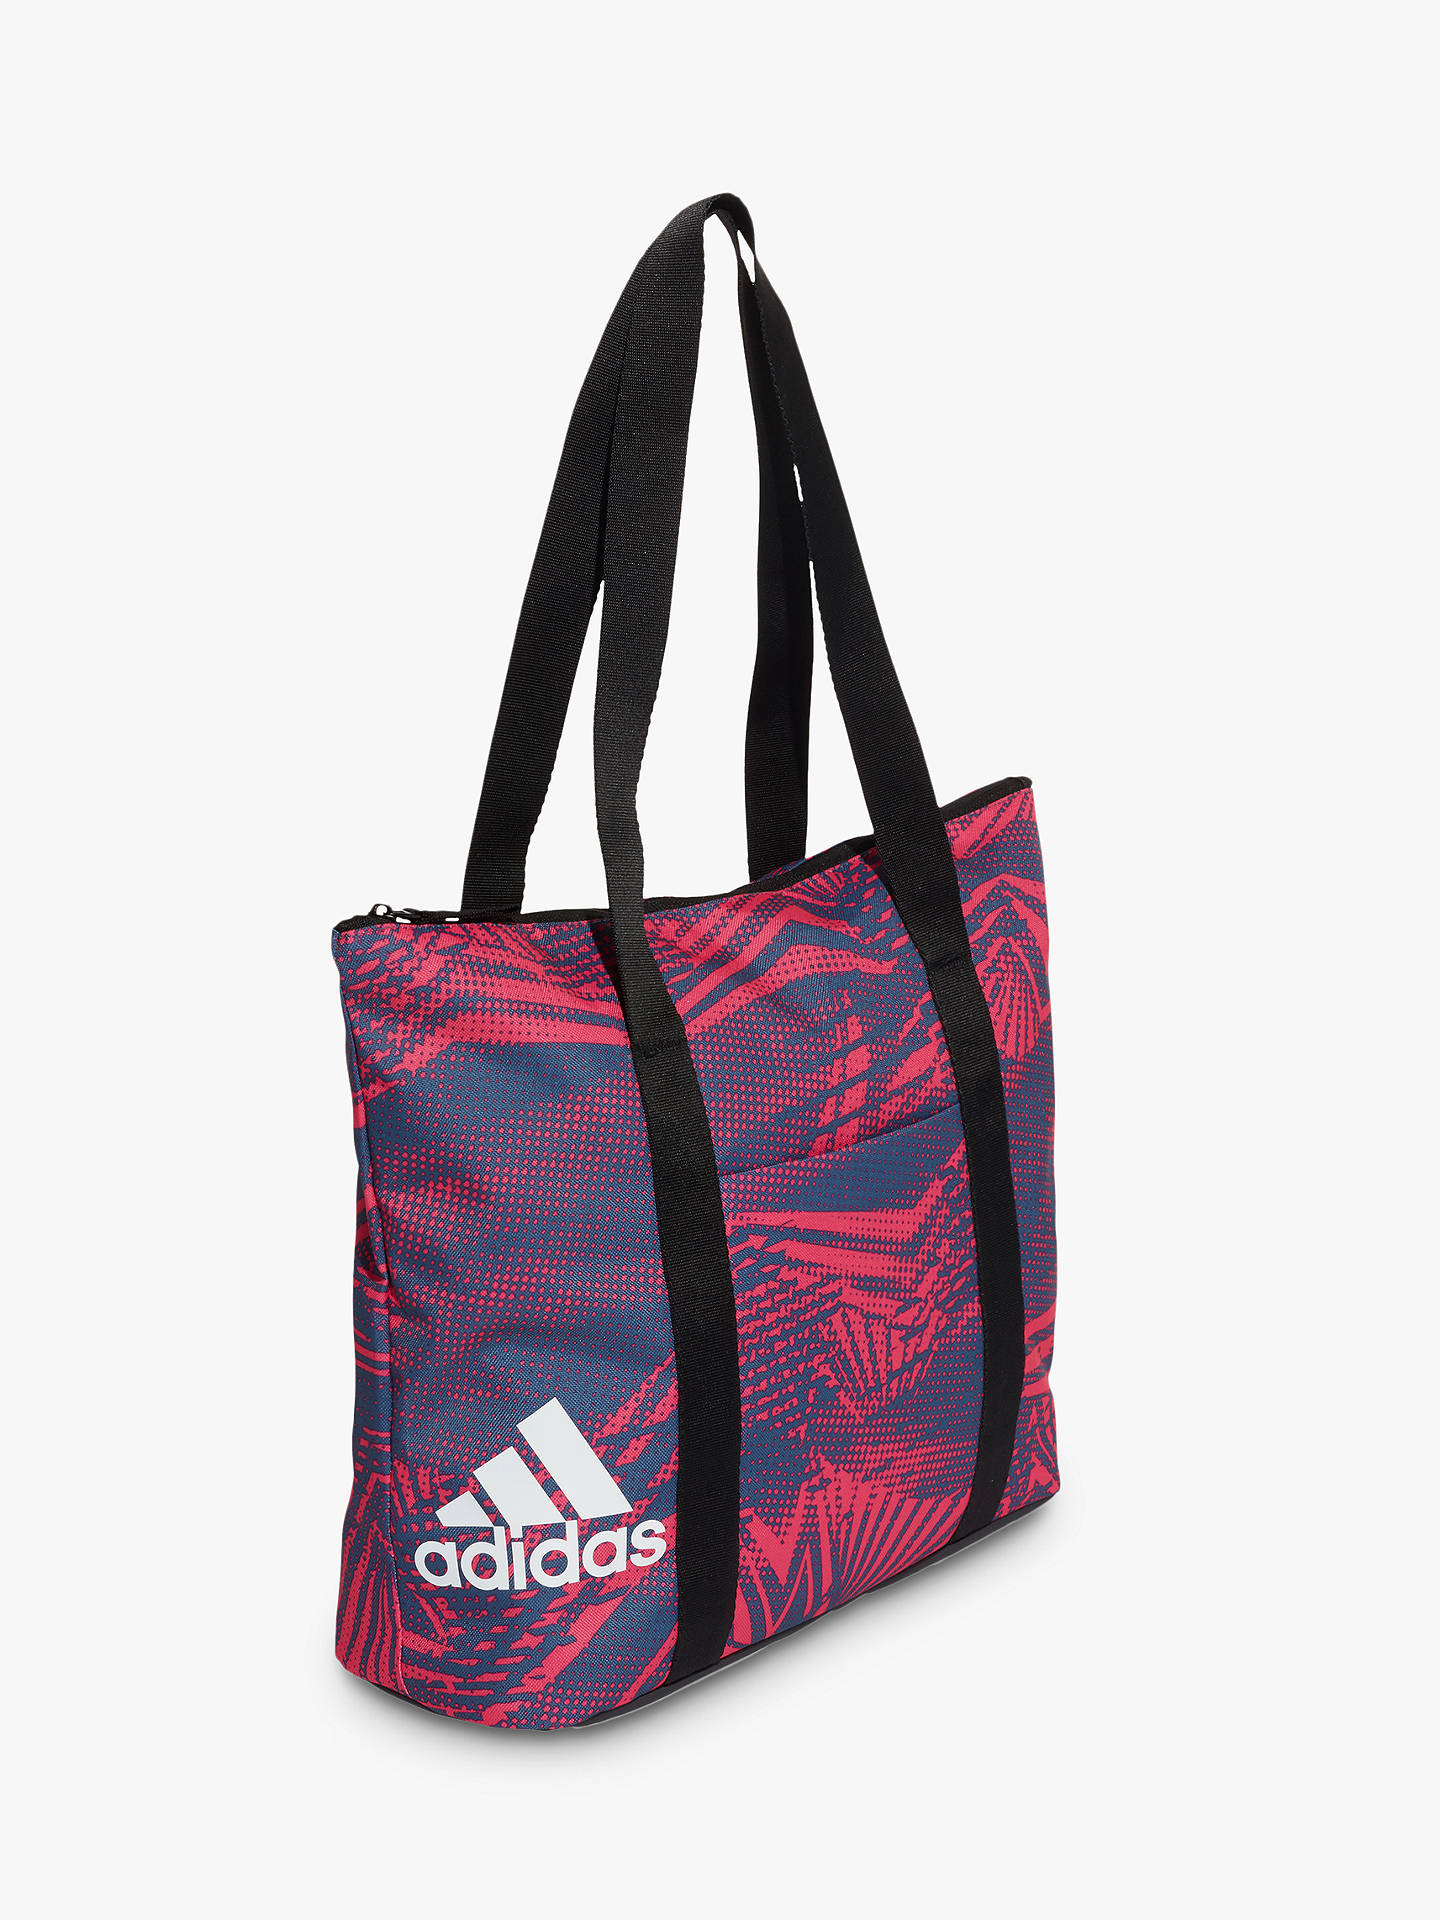 4d4cd5b61ac8 adidas Training Essentials Graphic Tote Bag, Real Magenta/Black/White